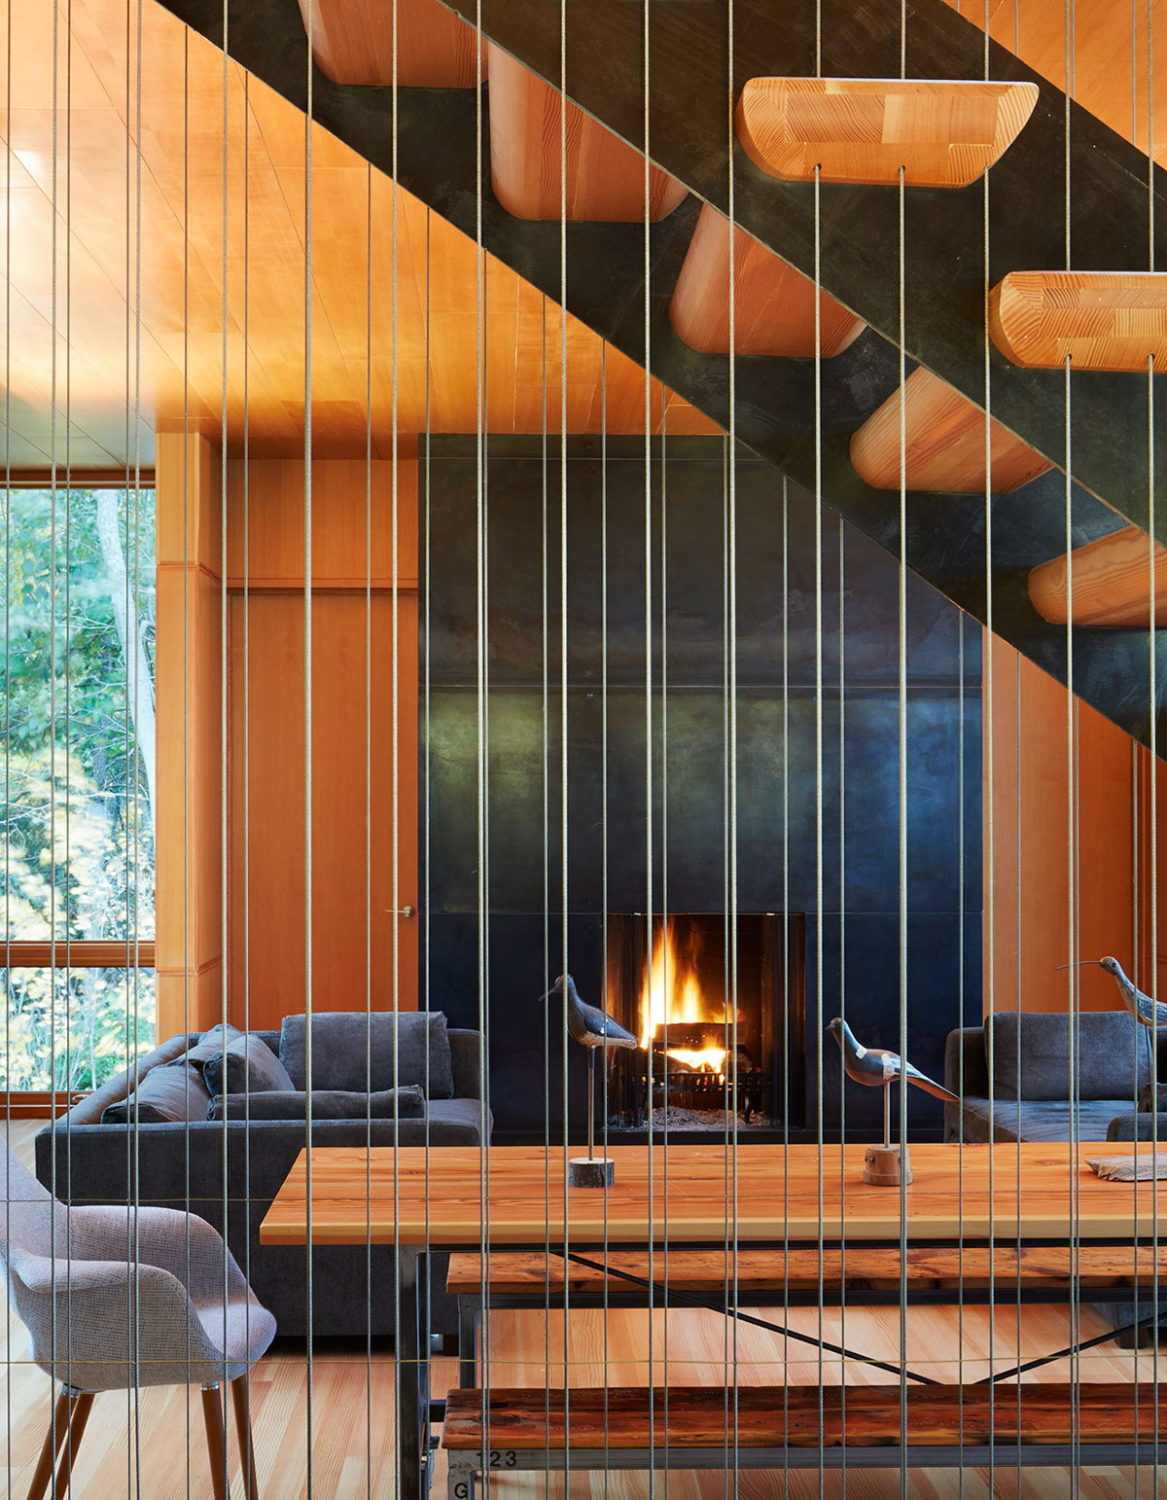 Suns End Retreat by Wheeler Kearns Architects